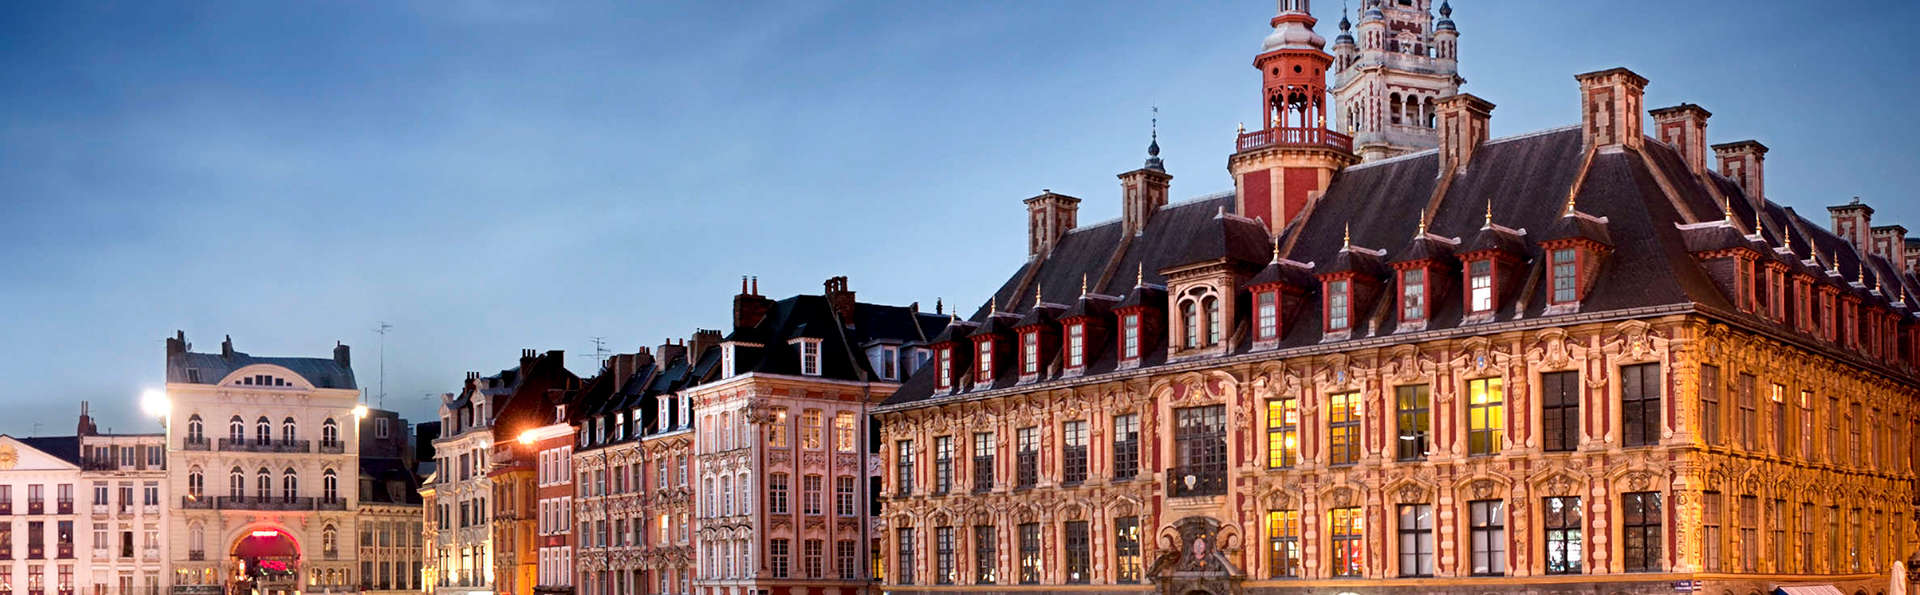 Grand Hôtel Bellevue - edit_new_lille4.jpg